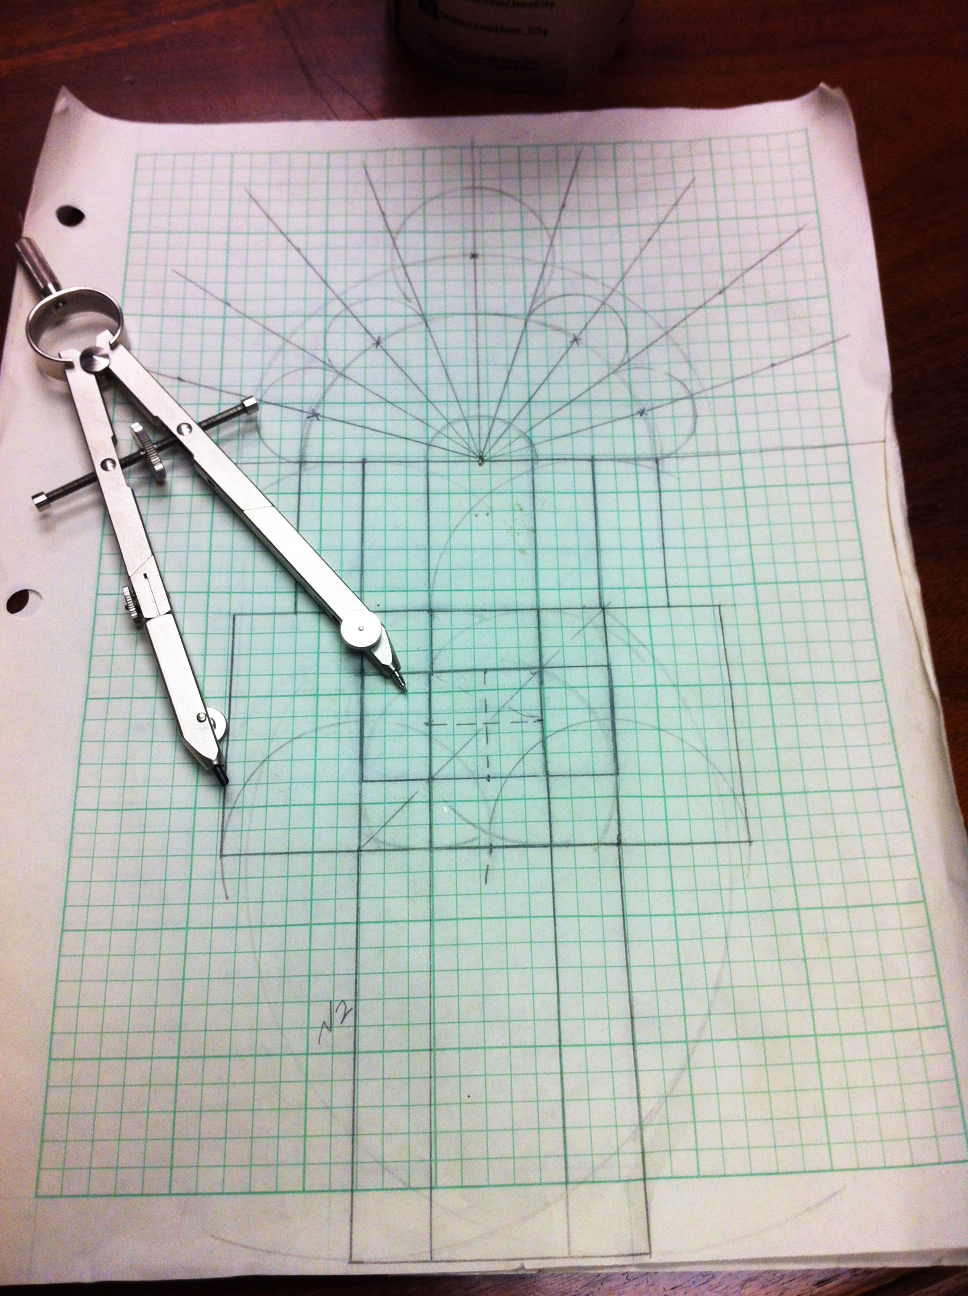 Sketch of cathedral window on graph paper